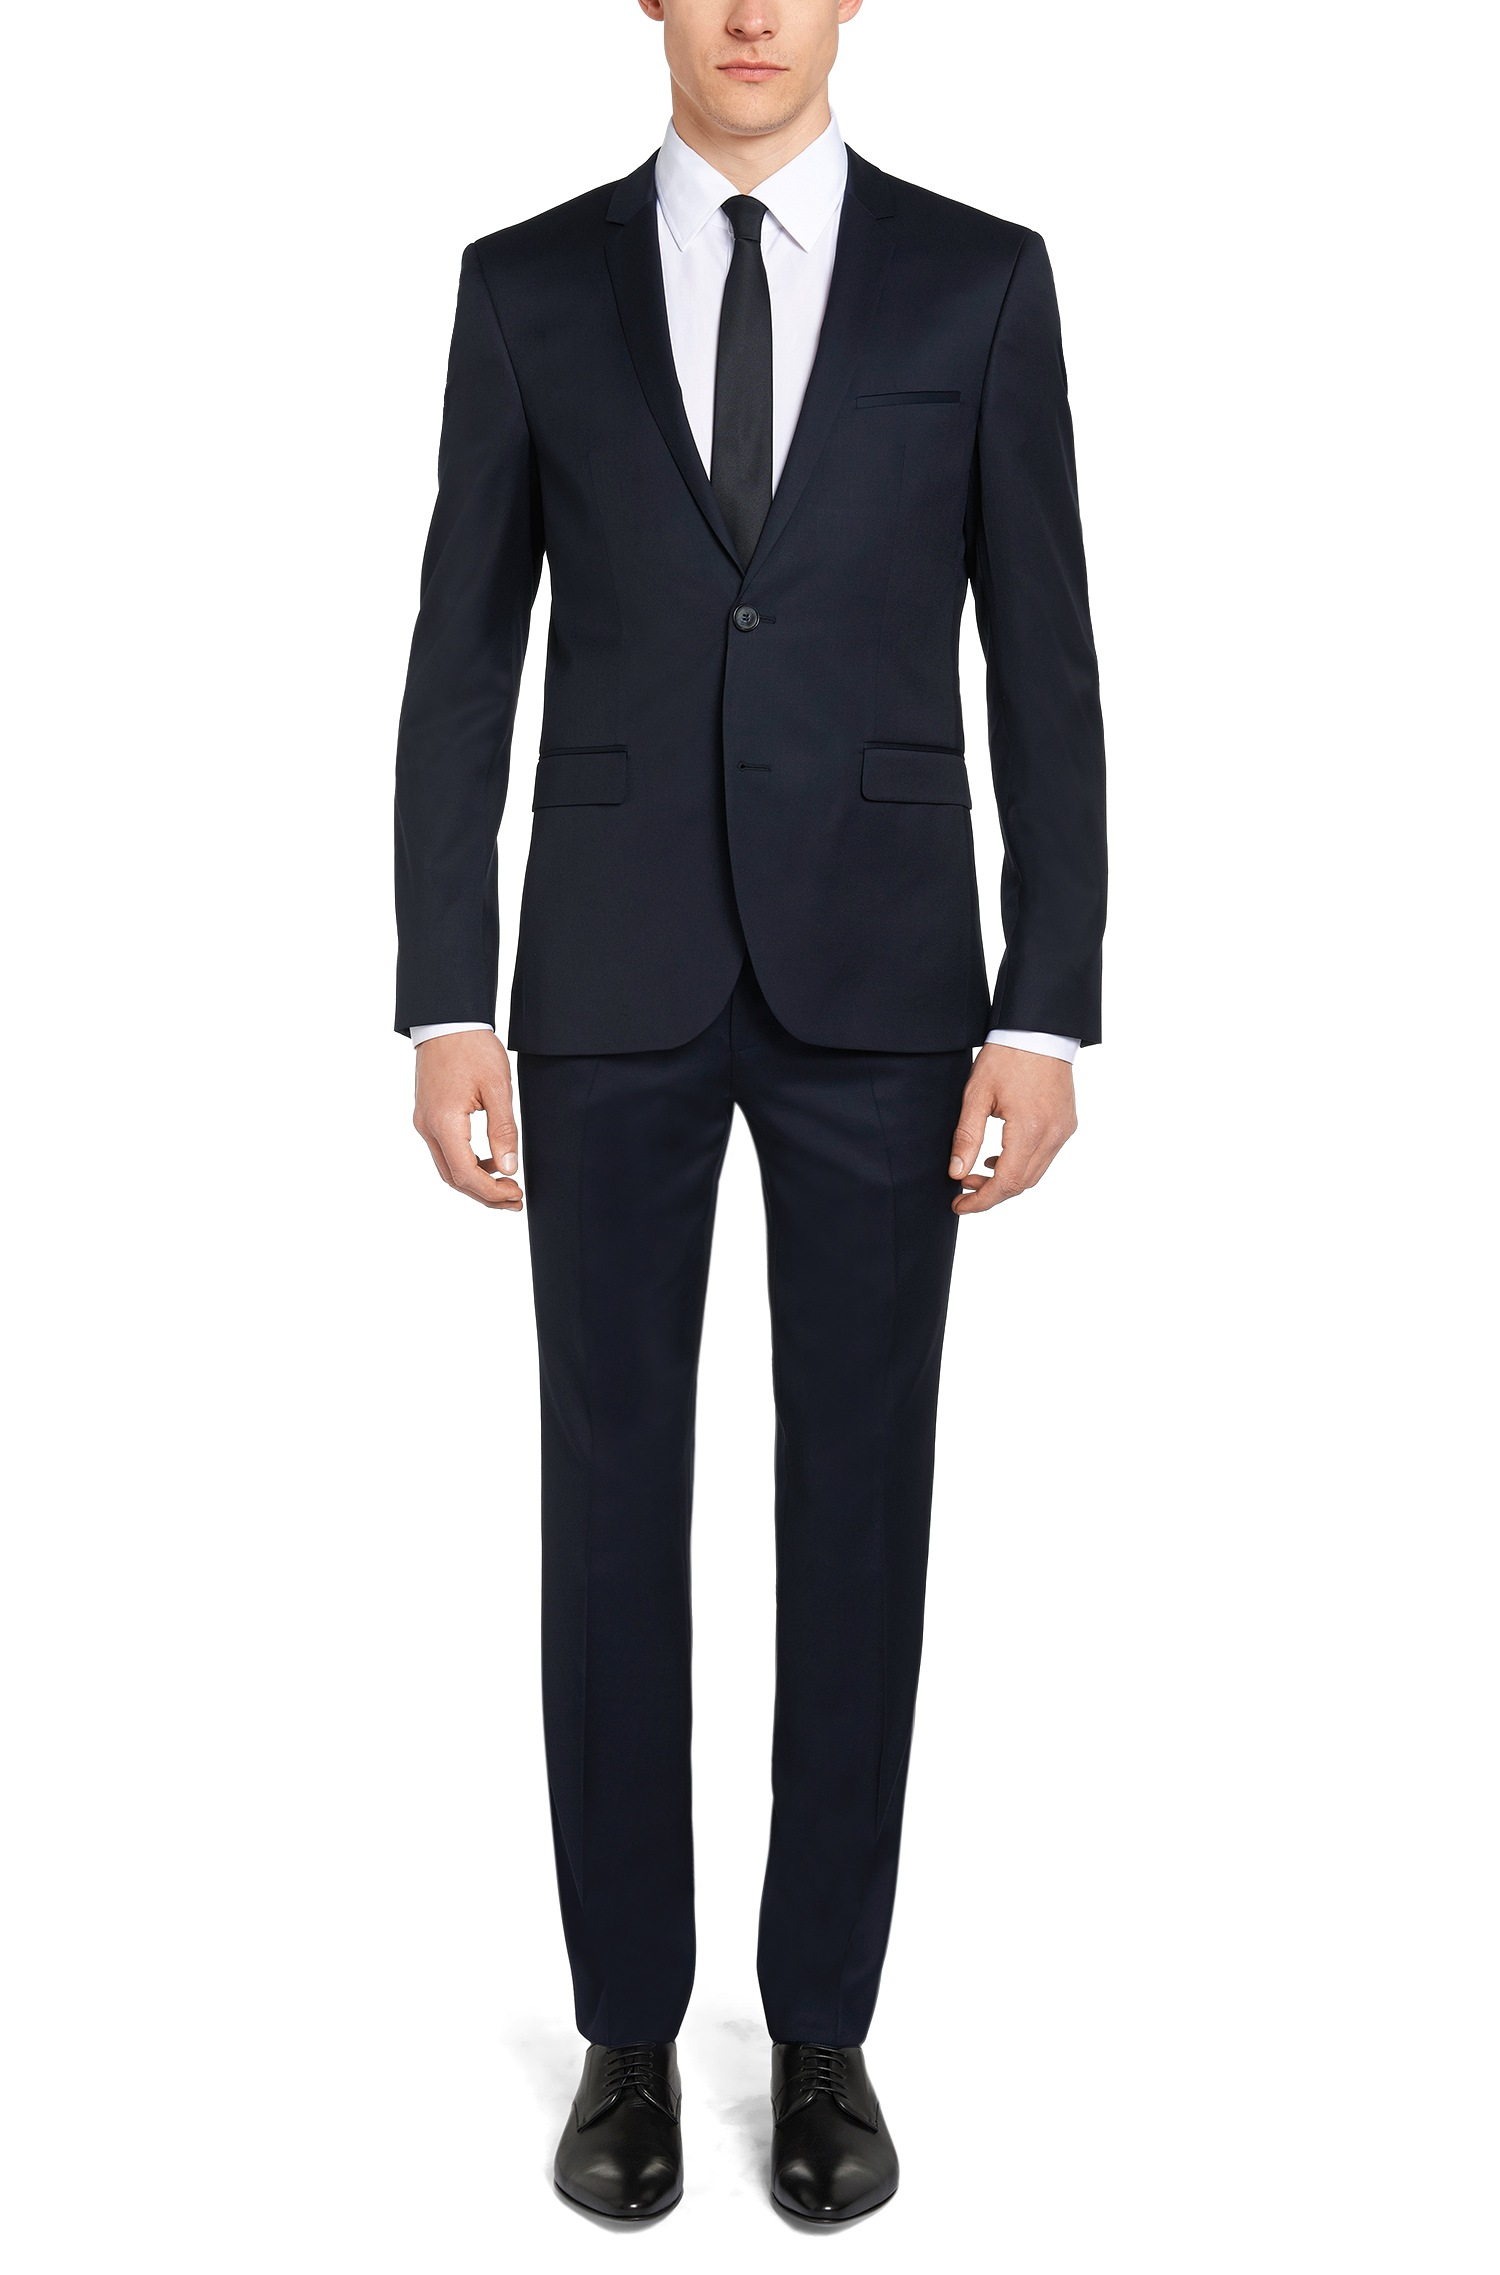 Abito extra slim fit Hugo Boss con giacca a due bottoni blu